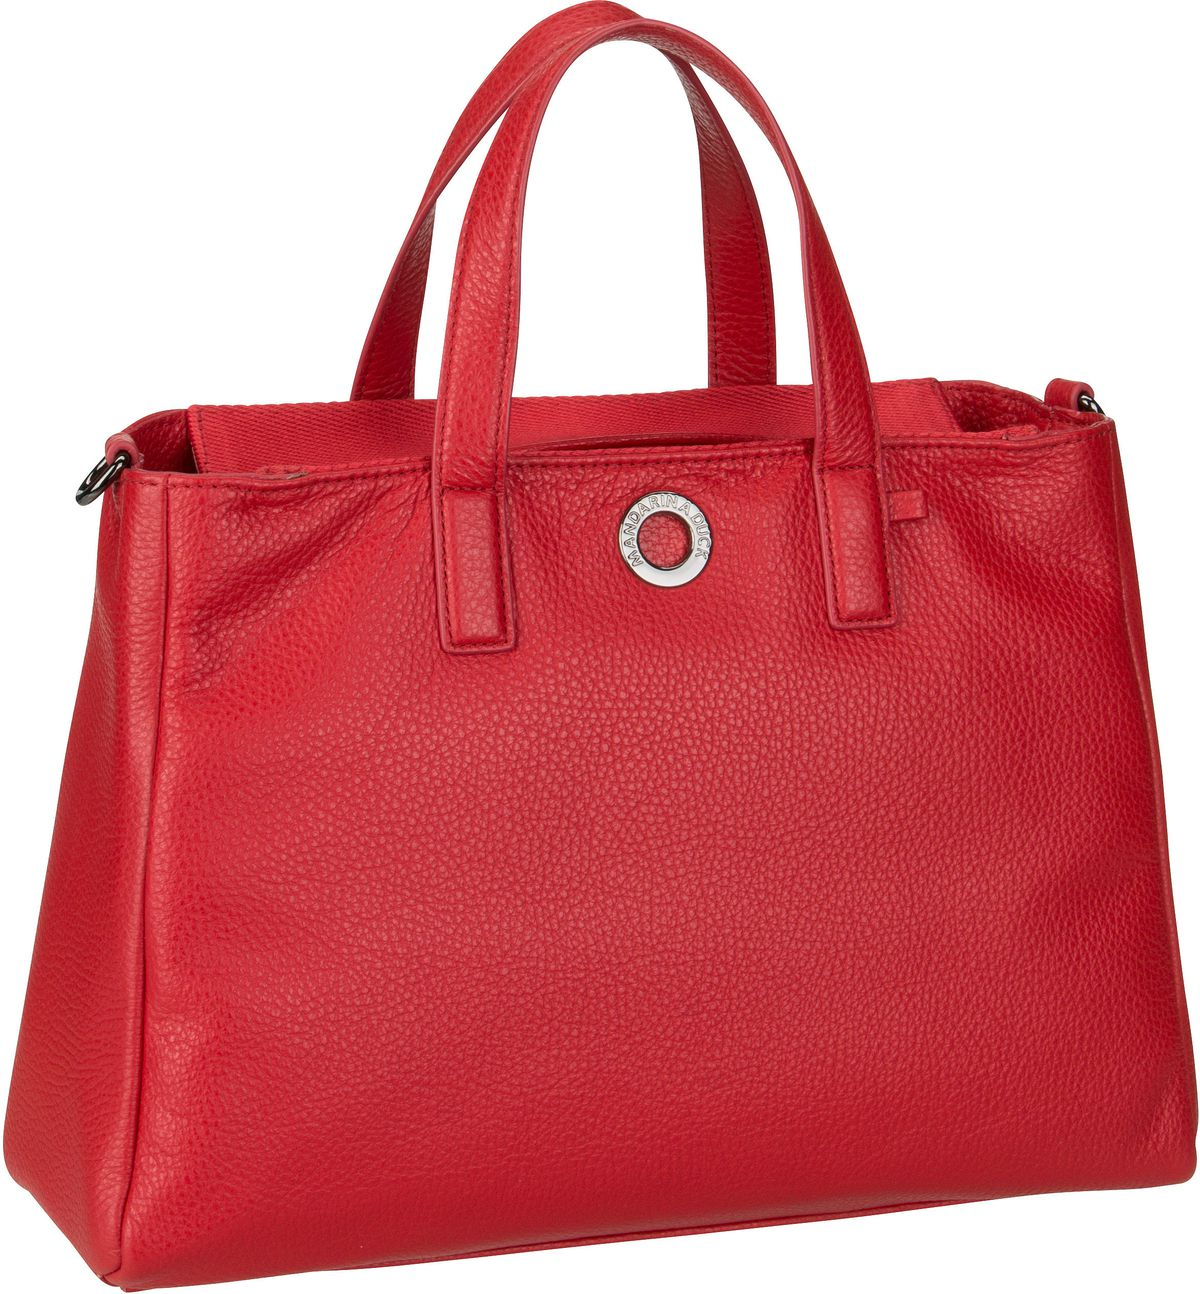 Handtasche Mellow Leather Tote Bag FZT26 Flame Scarlet